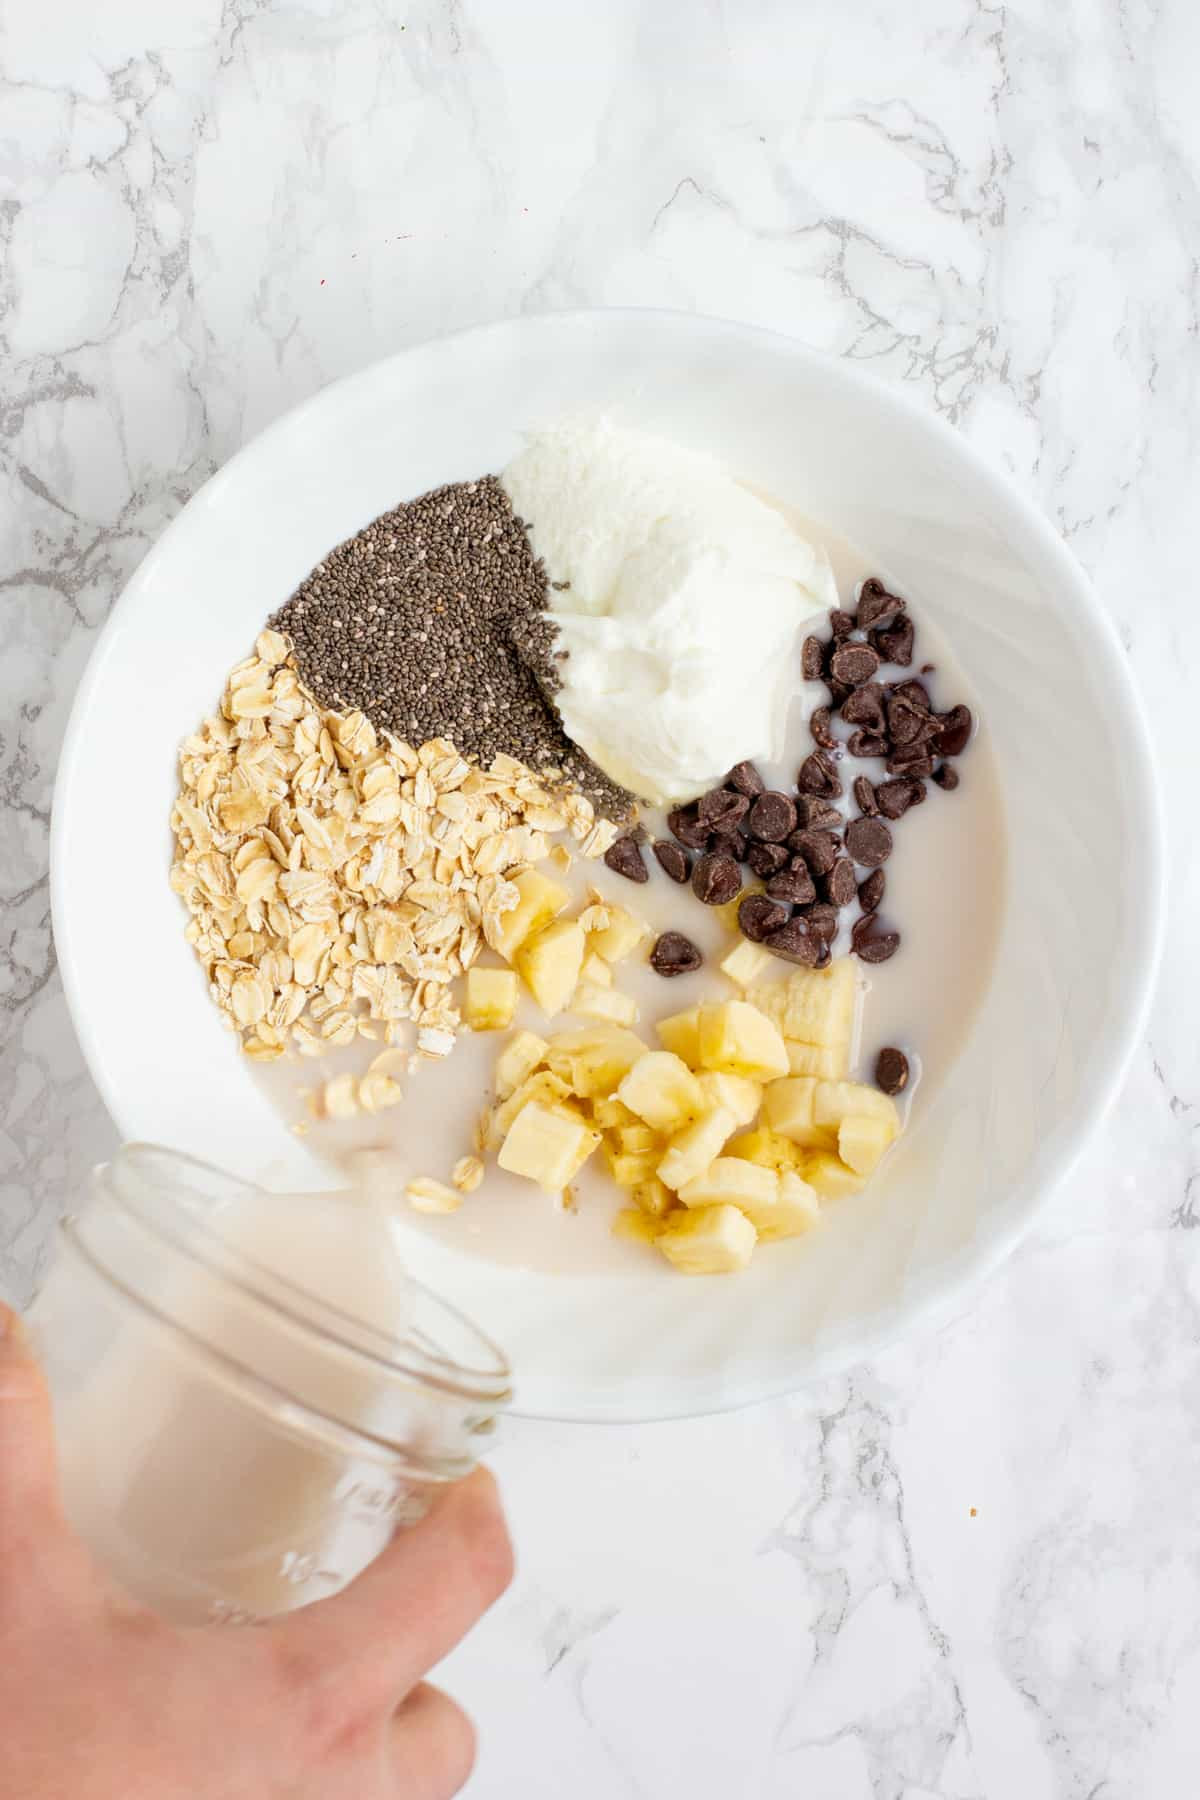 A hand pours milk from a glass jar into a white bowl. The white bowl is filled with other ingredients, including yogurt, chopped banana, chocolate chips, chia seeds, and rolled oats.